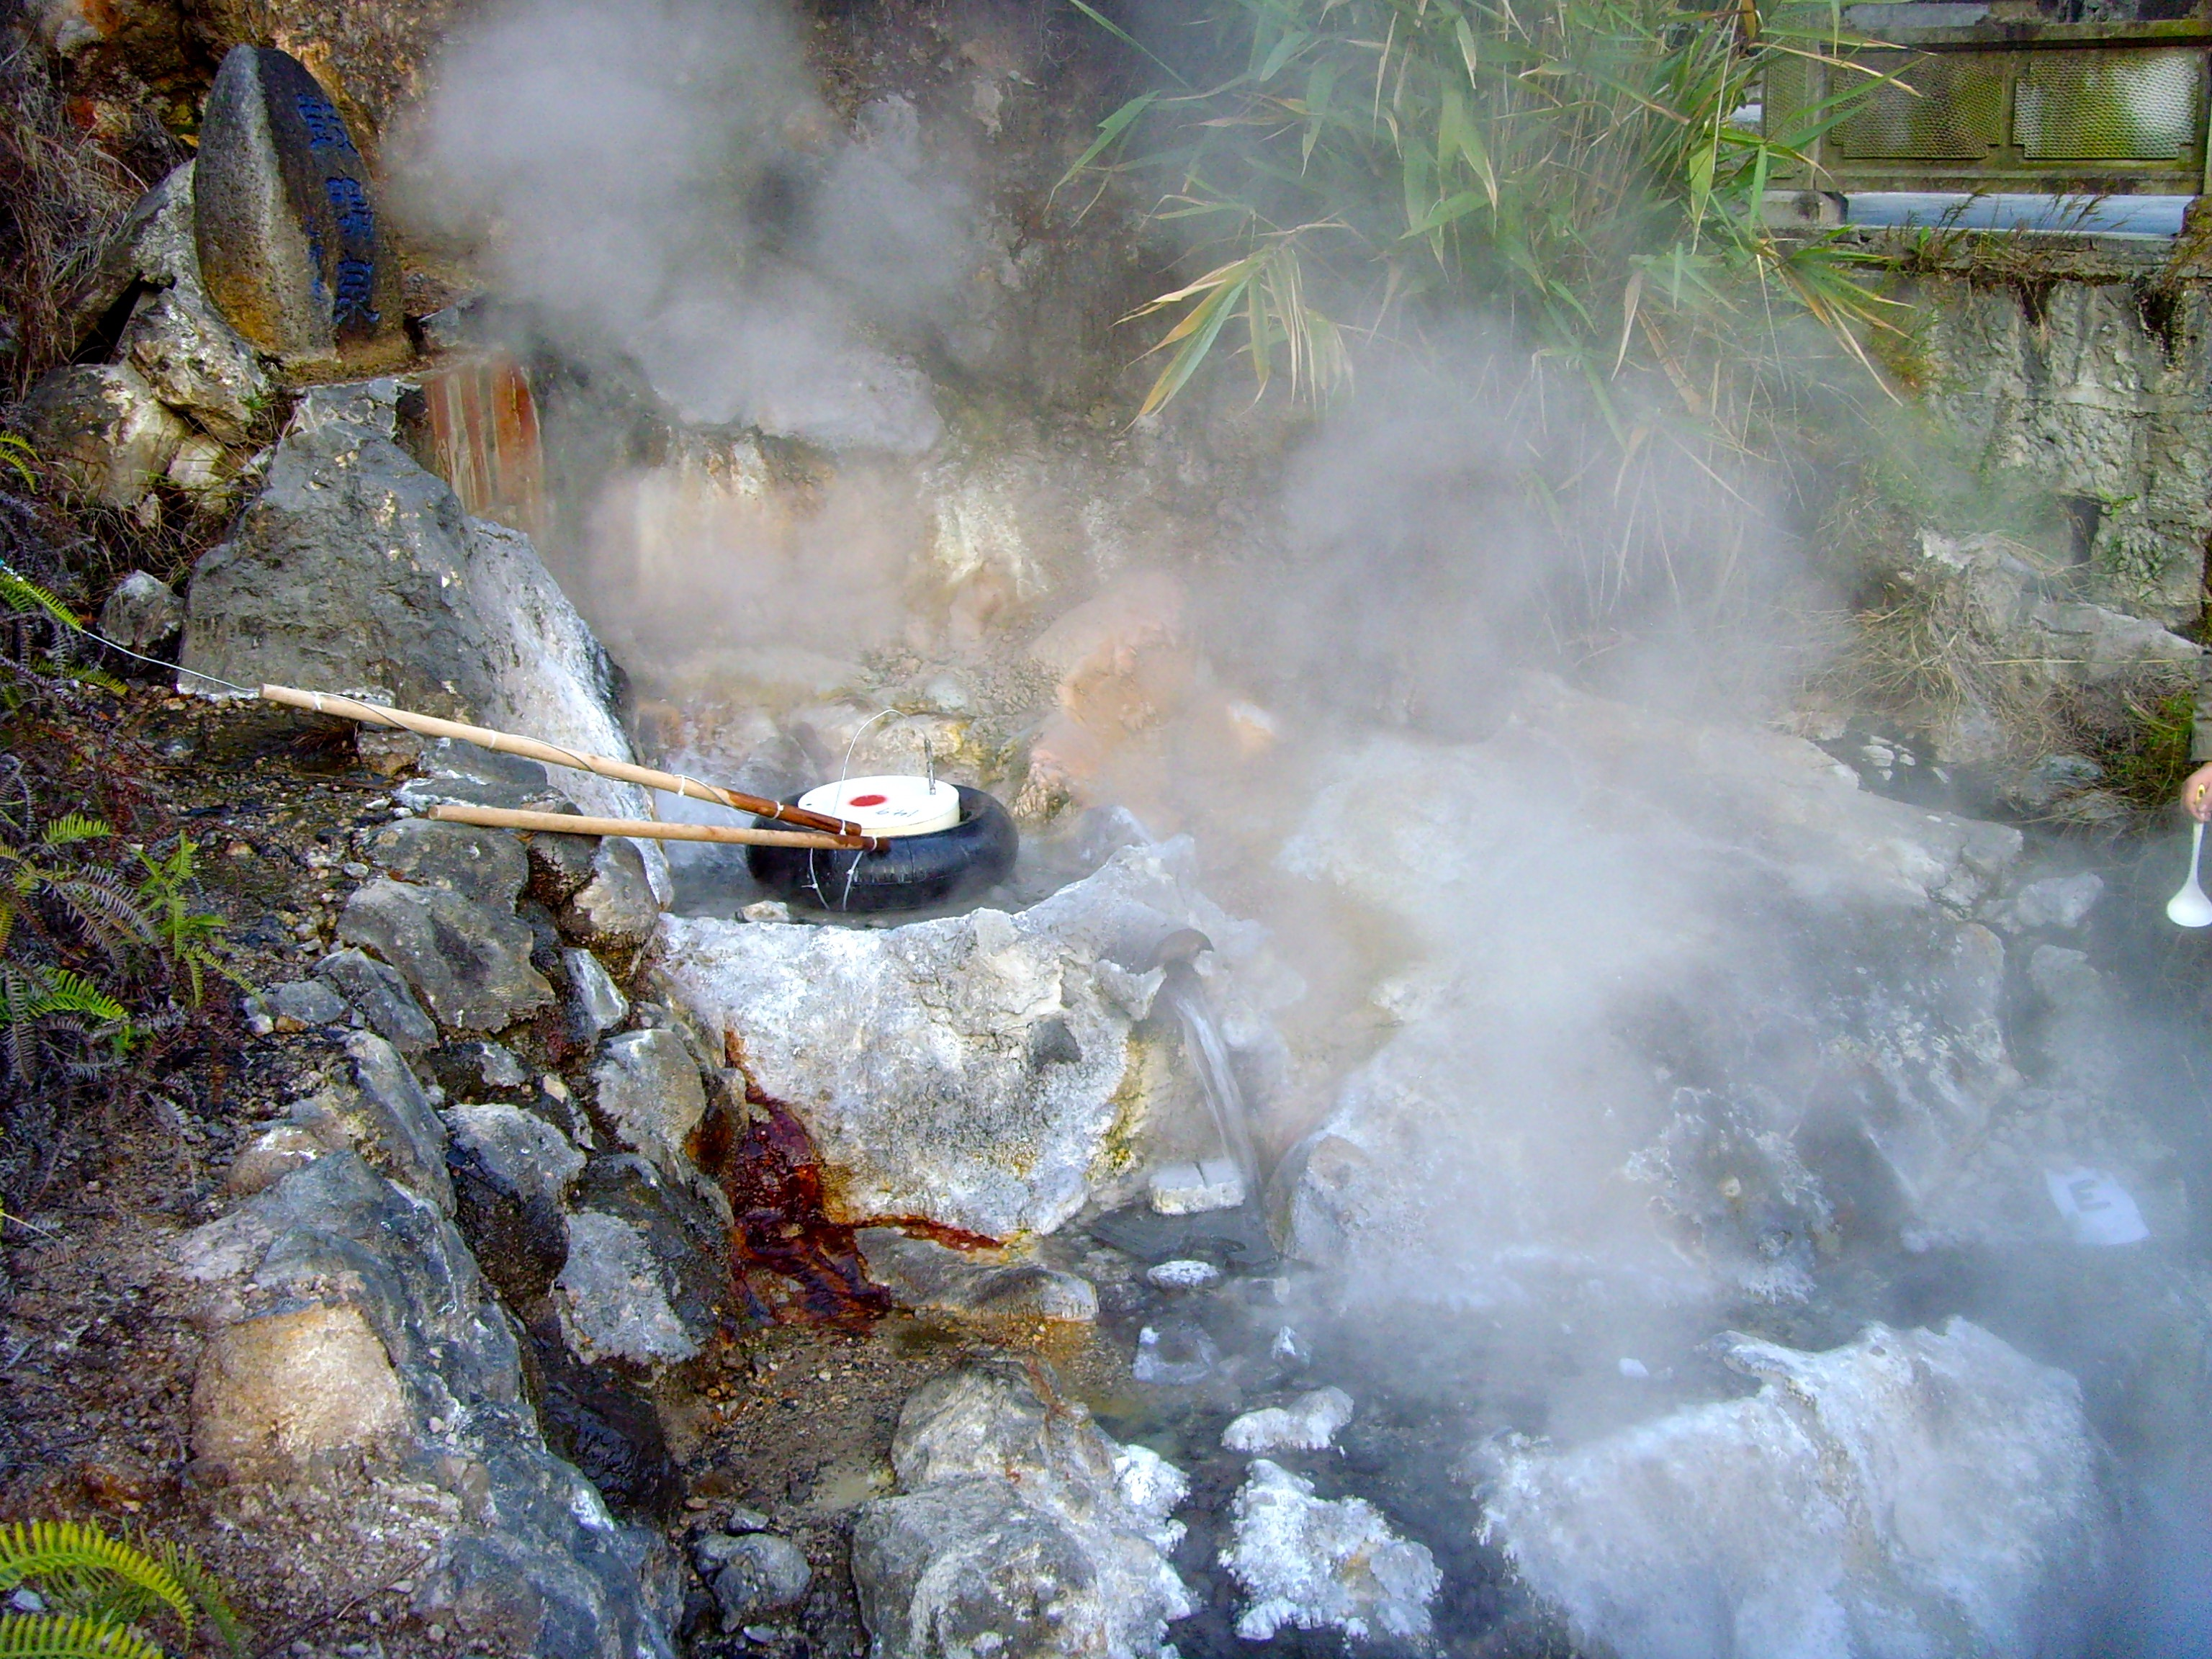 Steam rolling out of a hot spring.